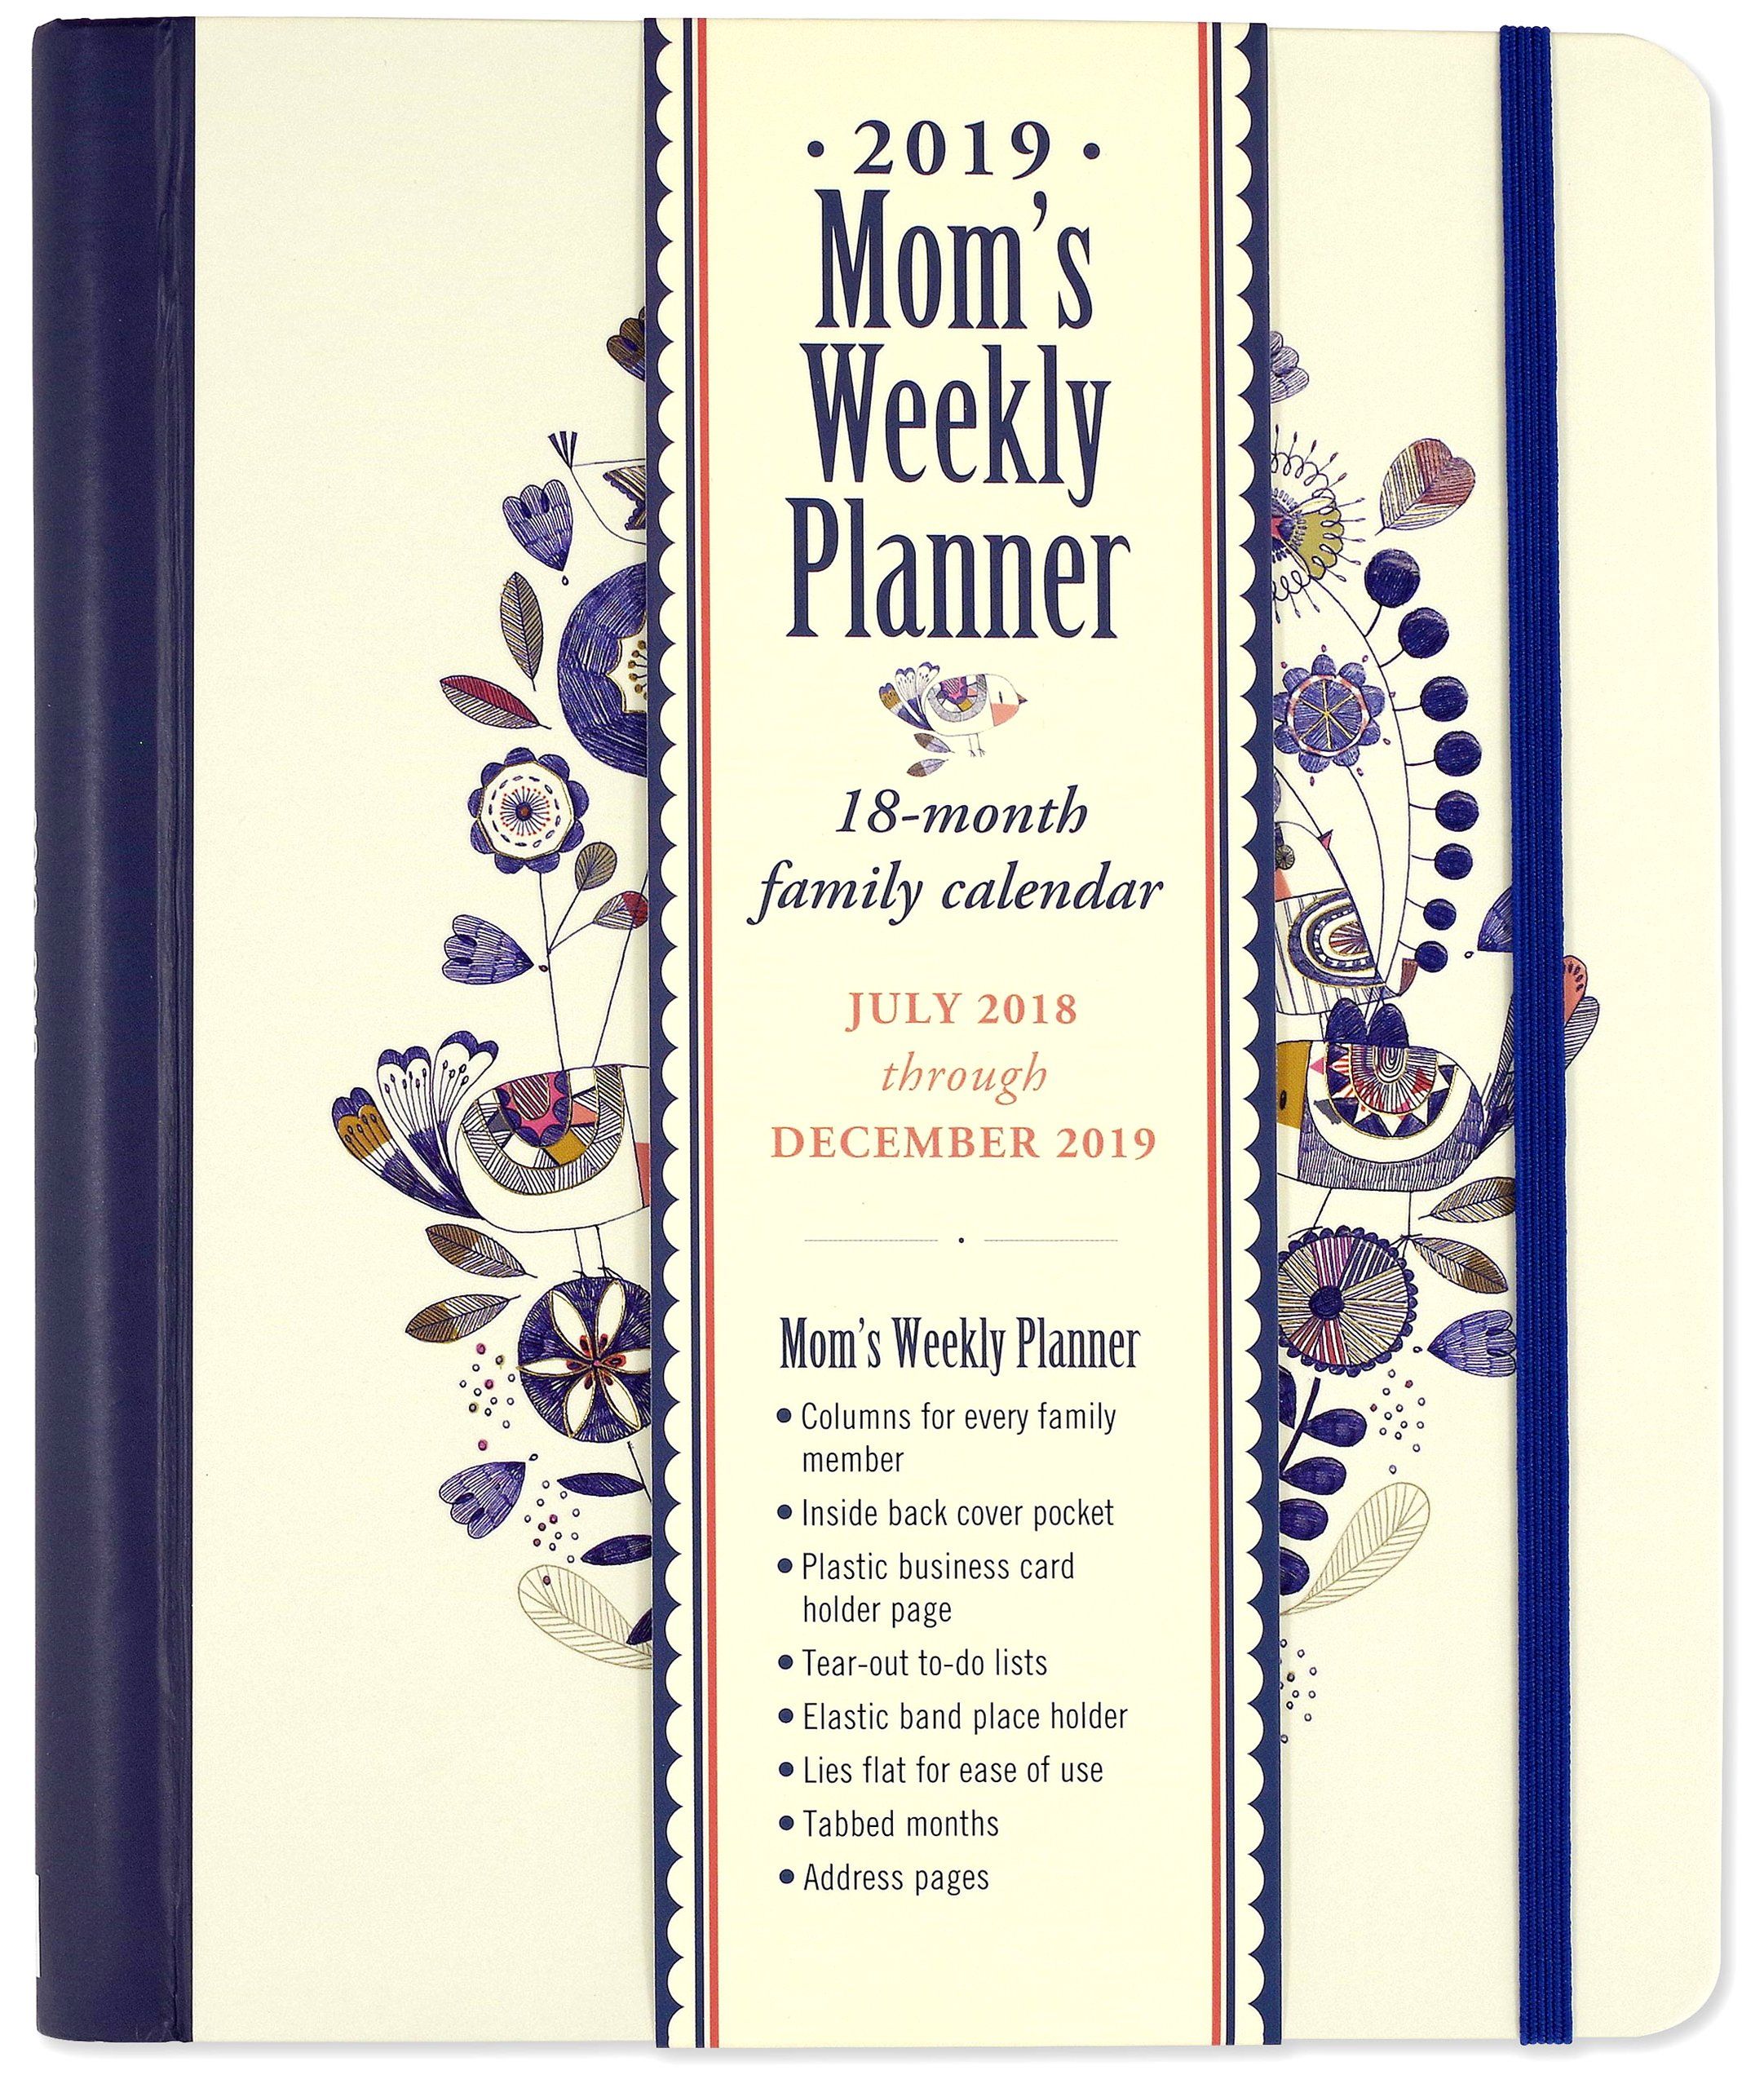 2019 She Believed She Could Mum's Weekly Planner 18-Month Family Calendar,  Diary: Amazon.co.uk: Inc. Peter Pauper Press: Books